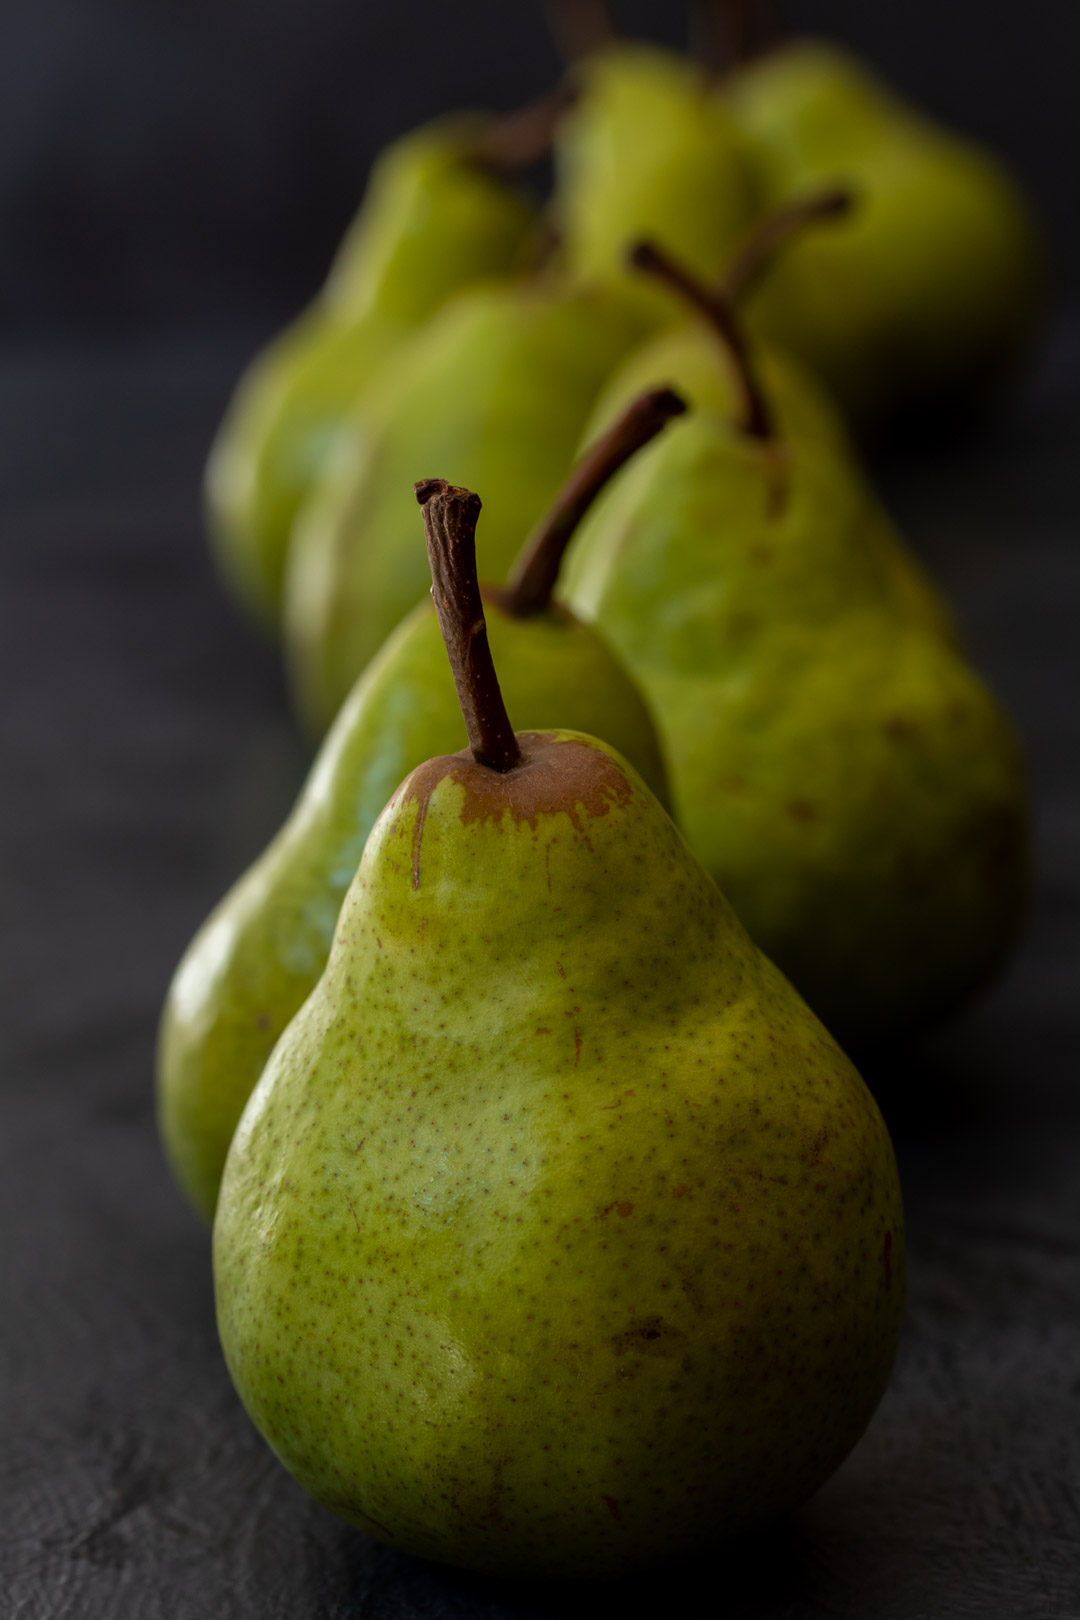 Pear pickles with cardamom & ginger: pears in line still life